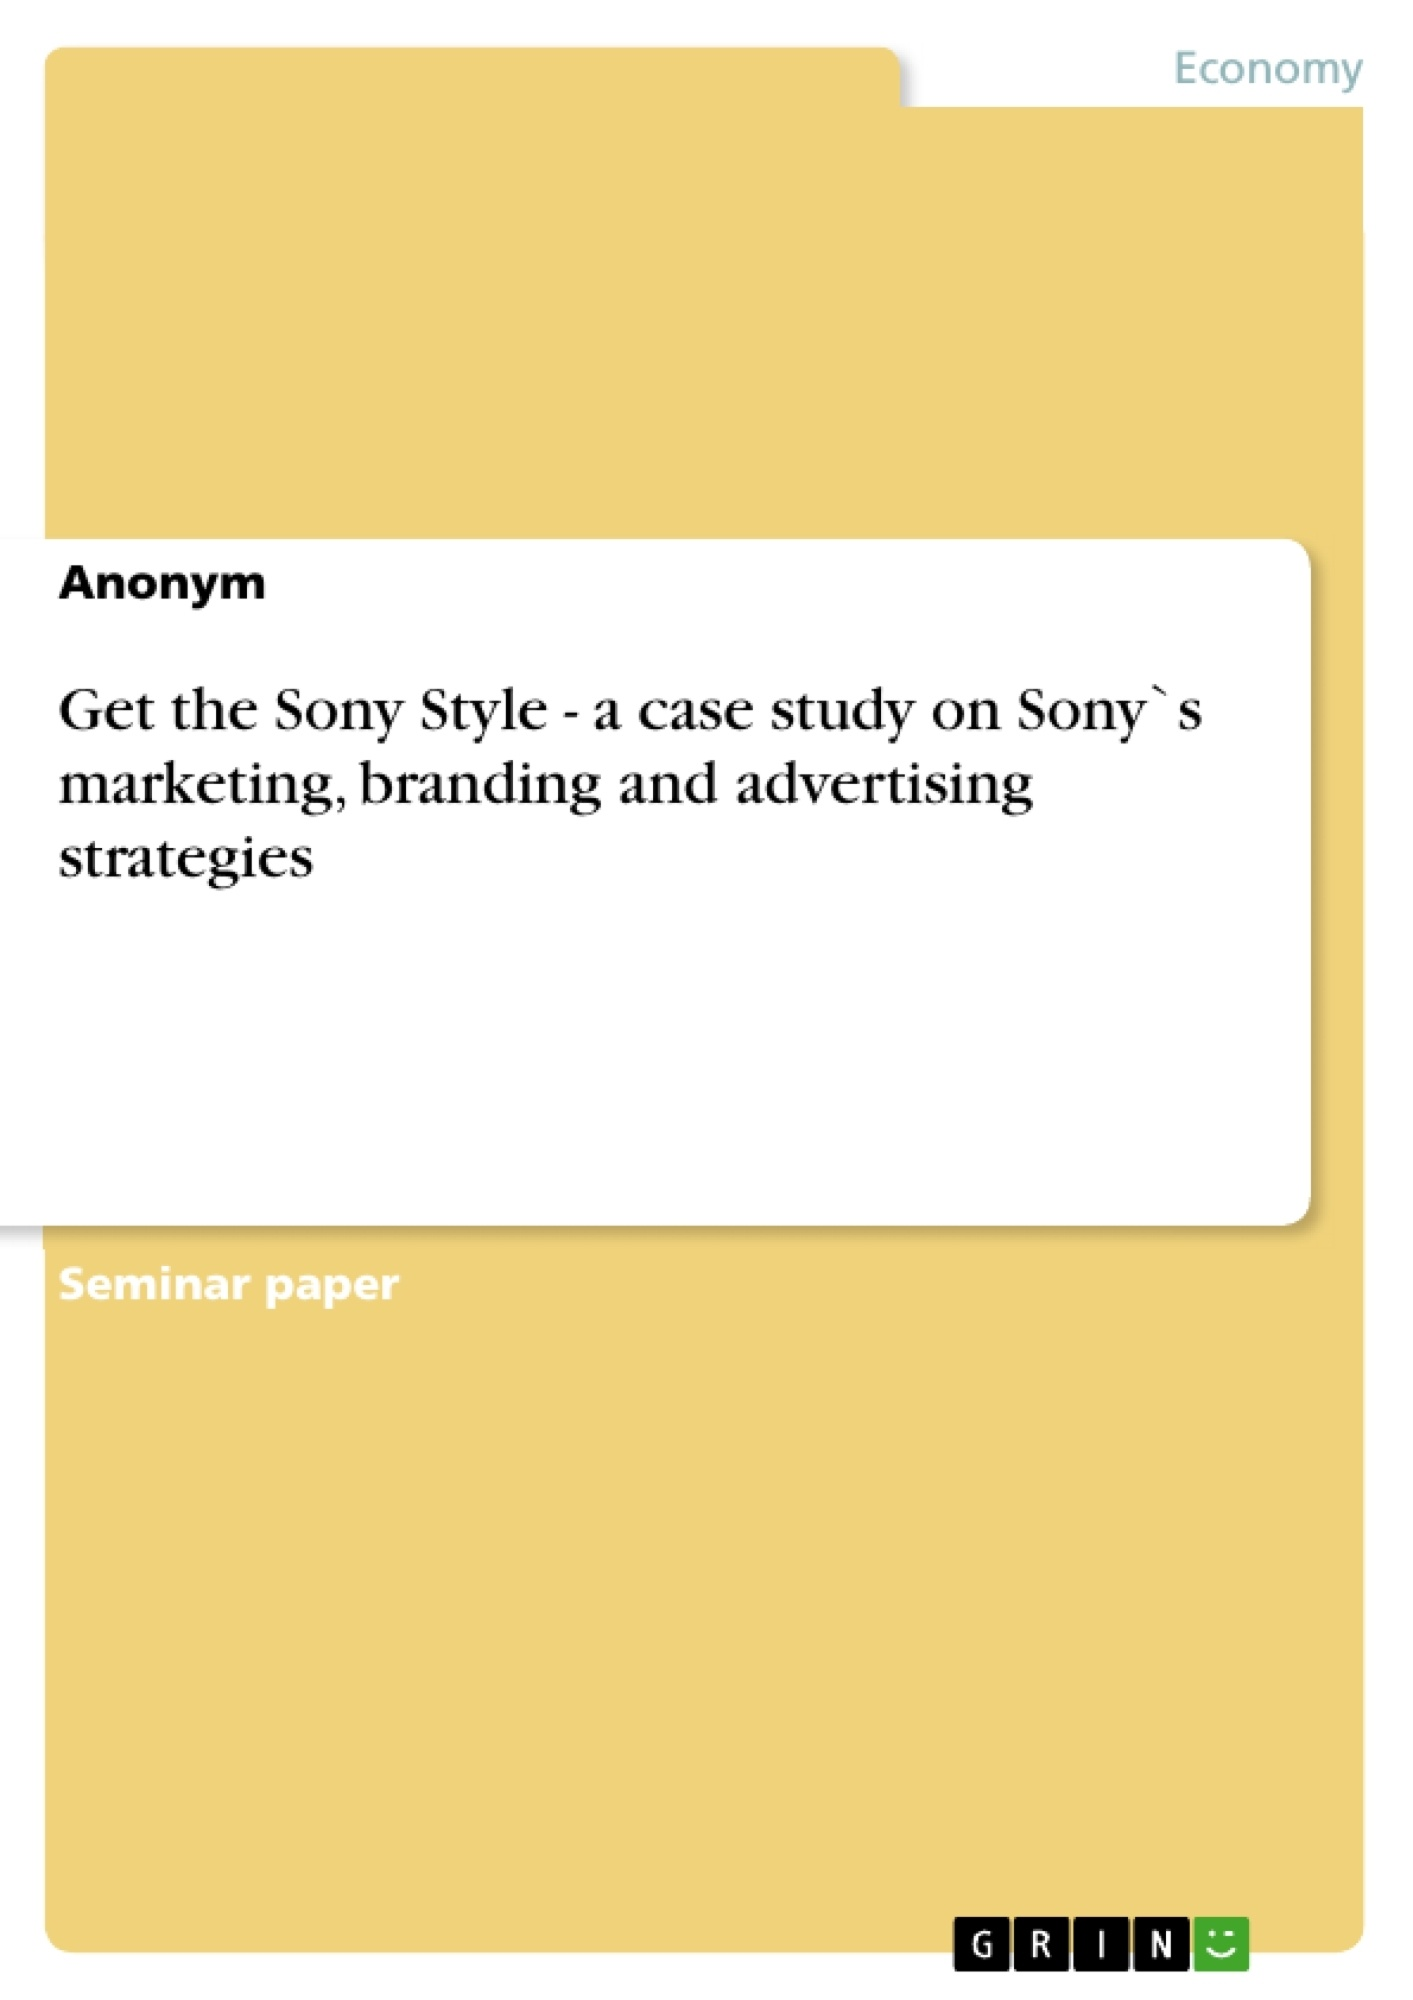 Title: Get the Sony Style - a case study on Sony`s marketing, branding and advertising strategies